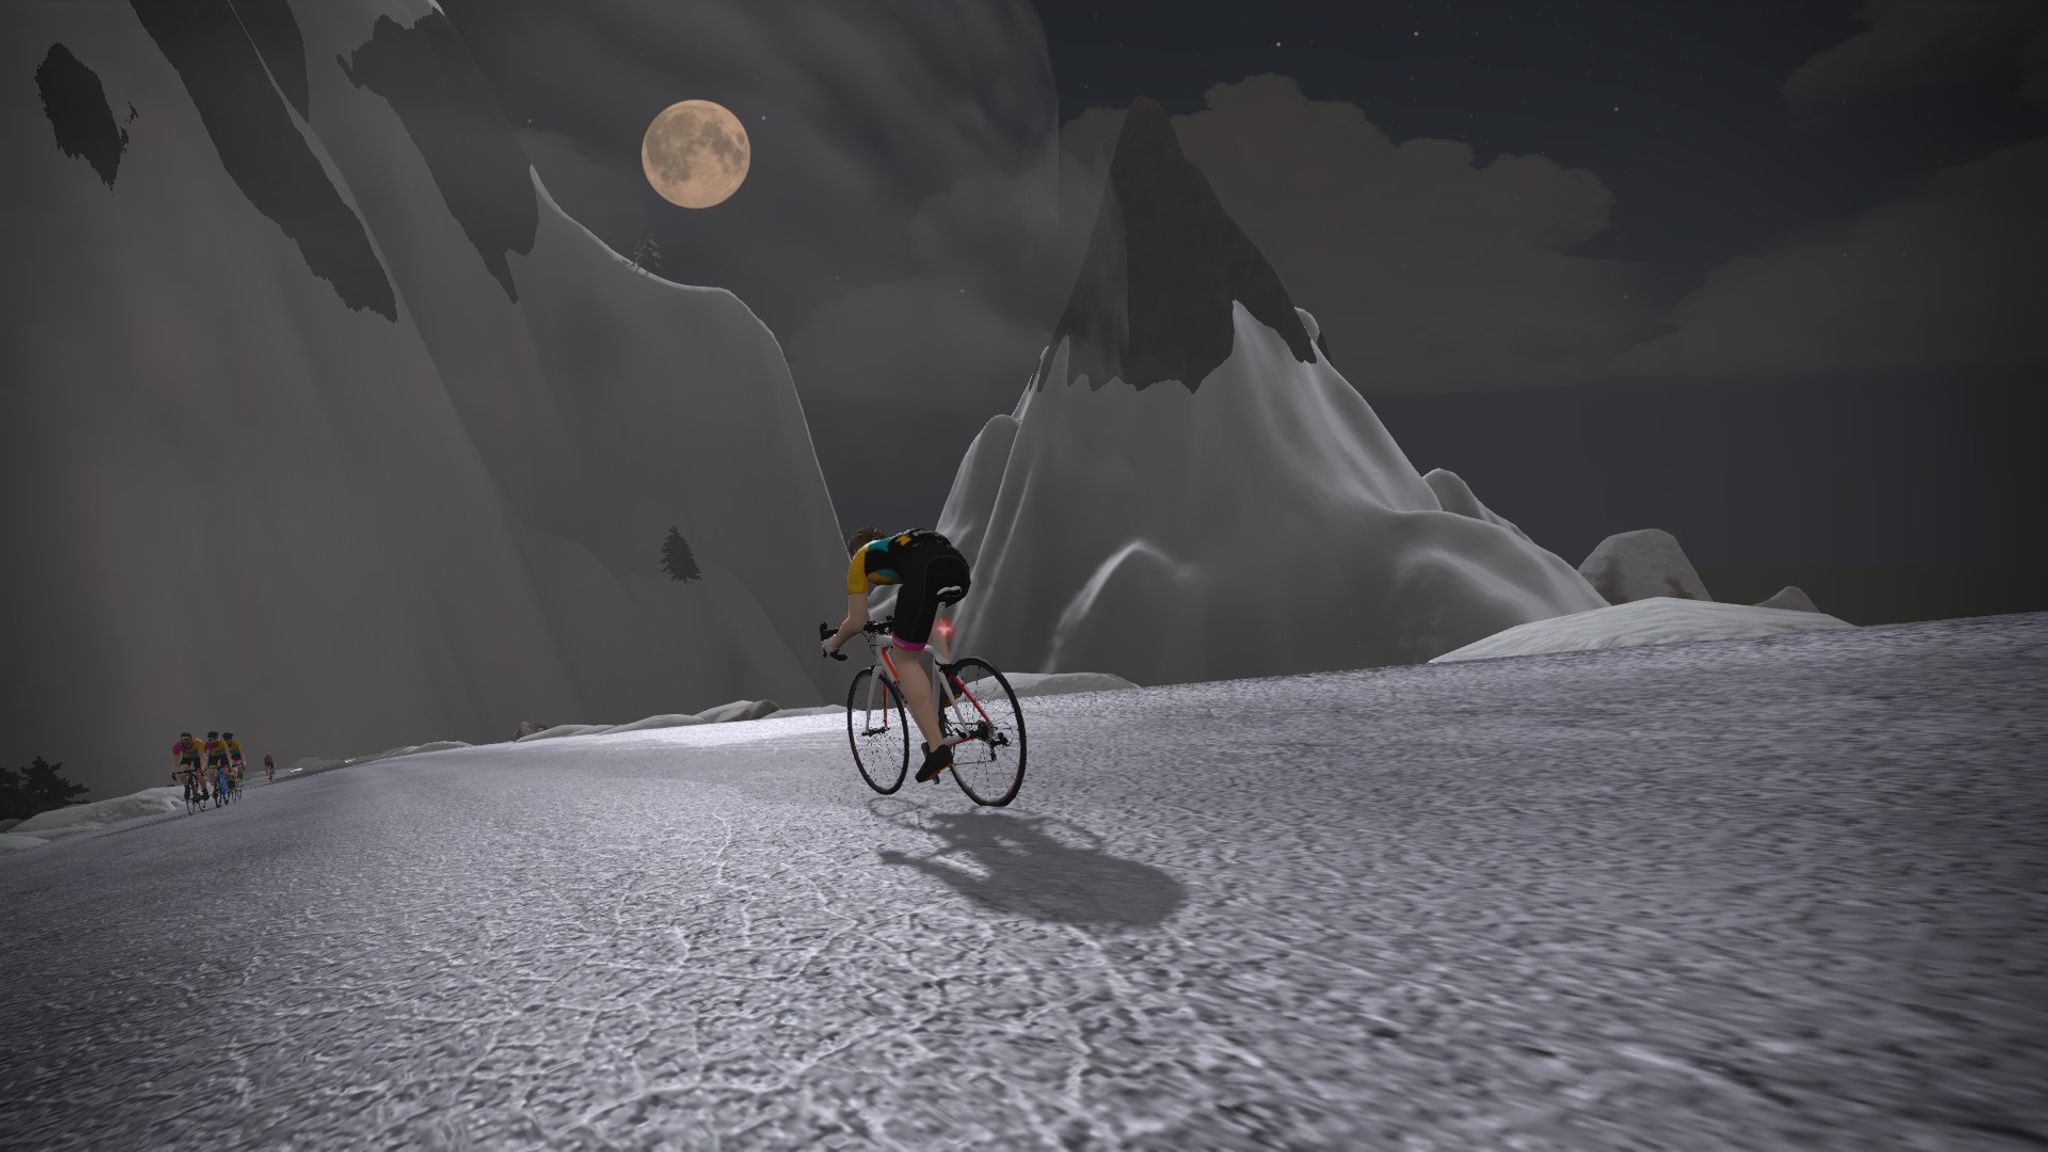 Orny descending a mountain in Zwift's Watopia